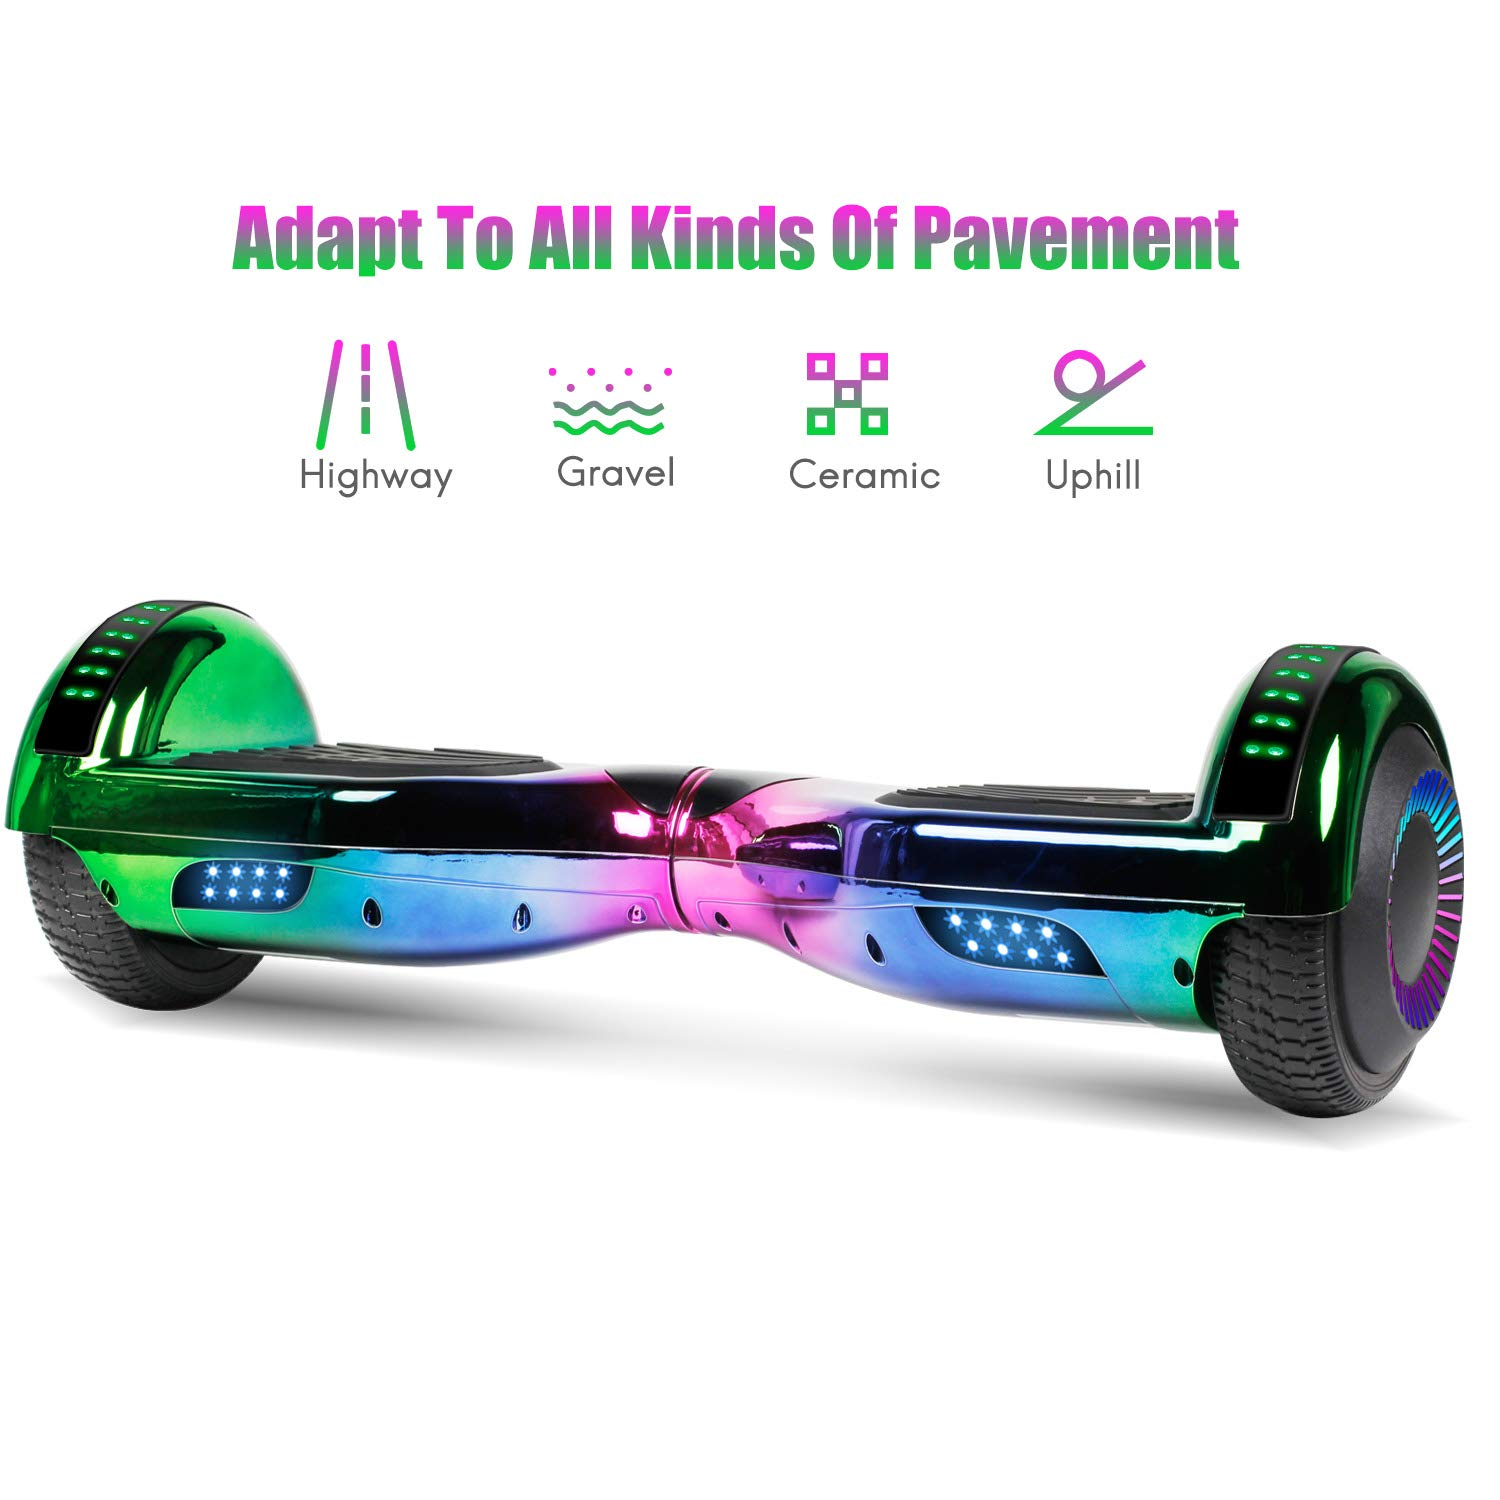 jolege Hoverboard with Bluetooth 6.5 inch Self Balancing Hoverboards for Kids with LED Flahing Lights-UL2272 Certified by jolege (Image #5)